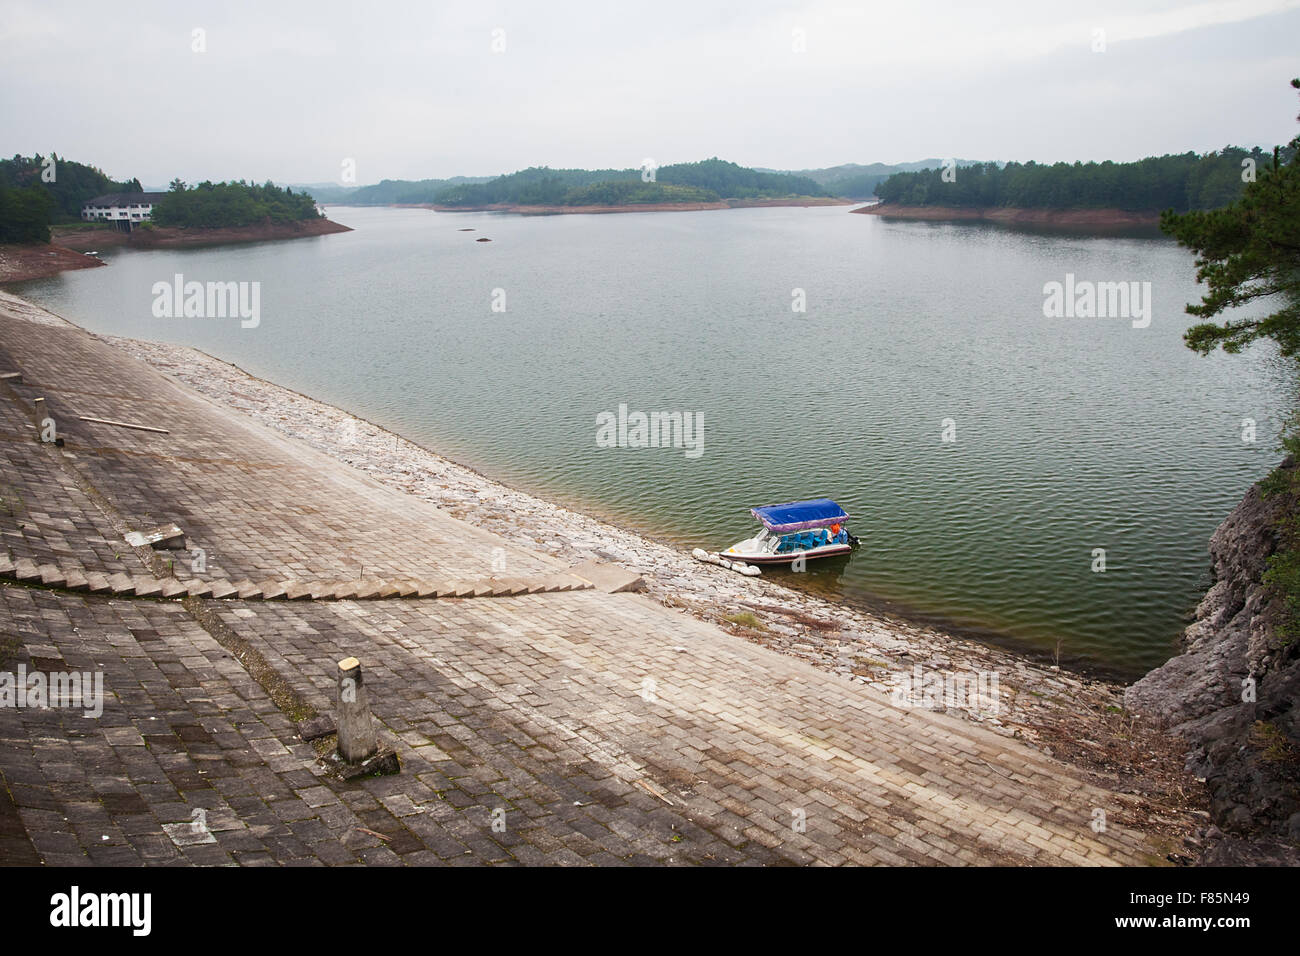 The boat on Teanding lake in China - Stock Image